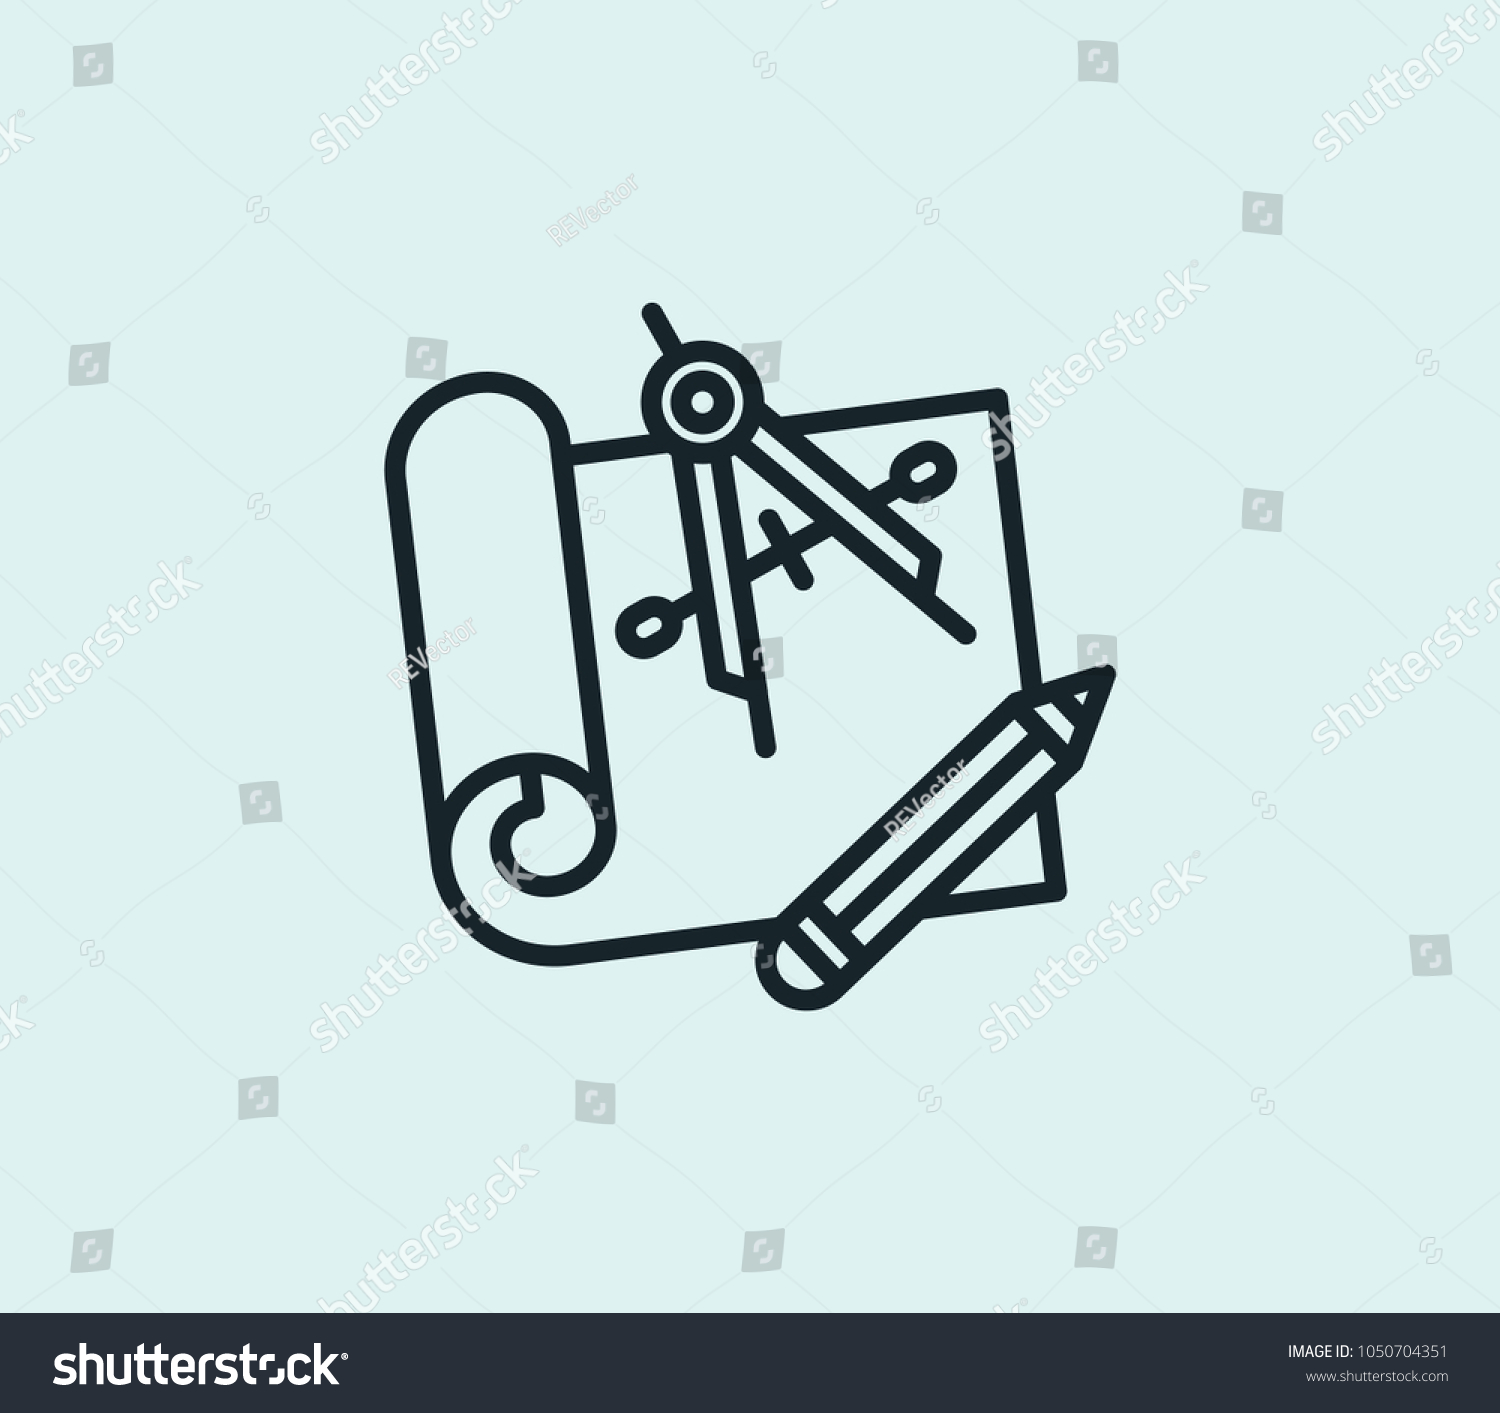 Engineering blueprint icon line isolated on stock illustration engineering blueprint icon line isolated on clean background engineering blueprint icon concept drawing icon line malvernweather Images